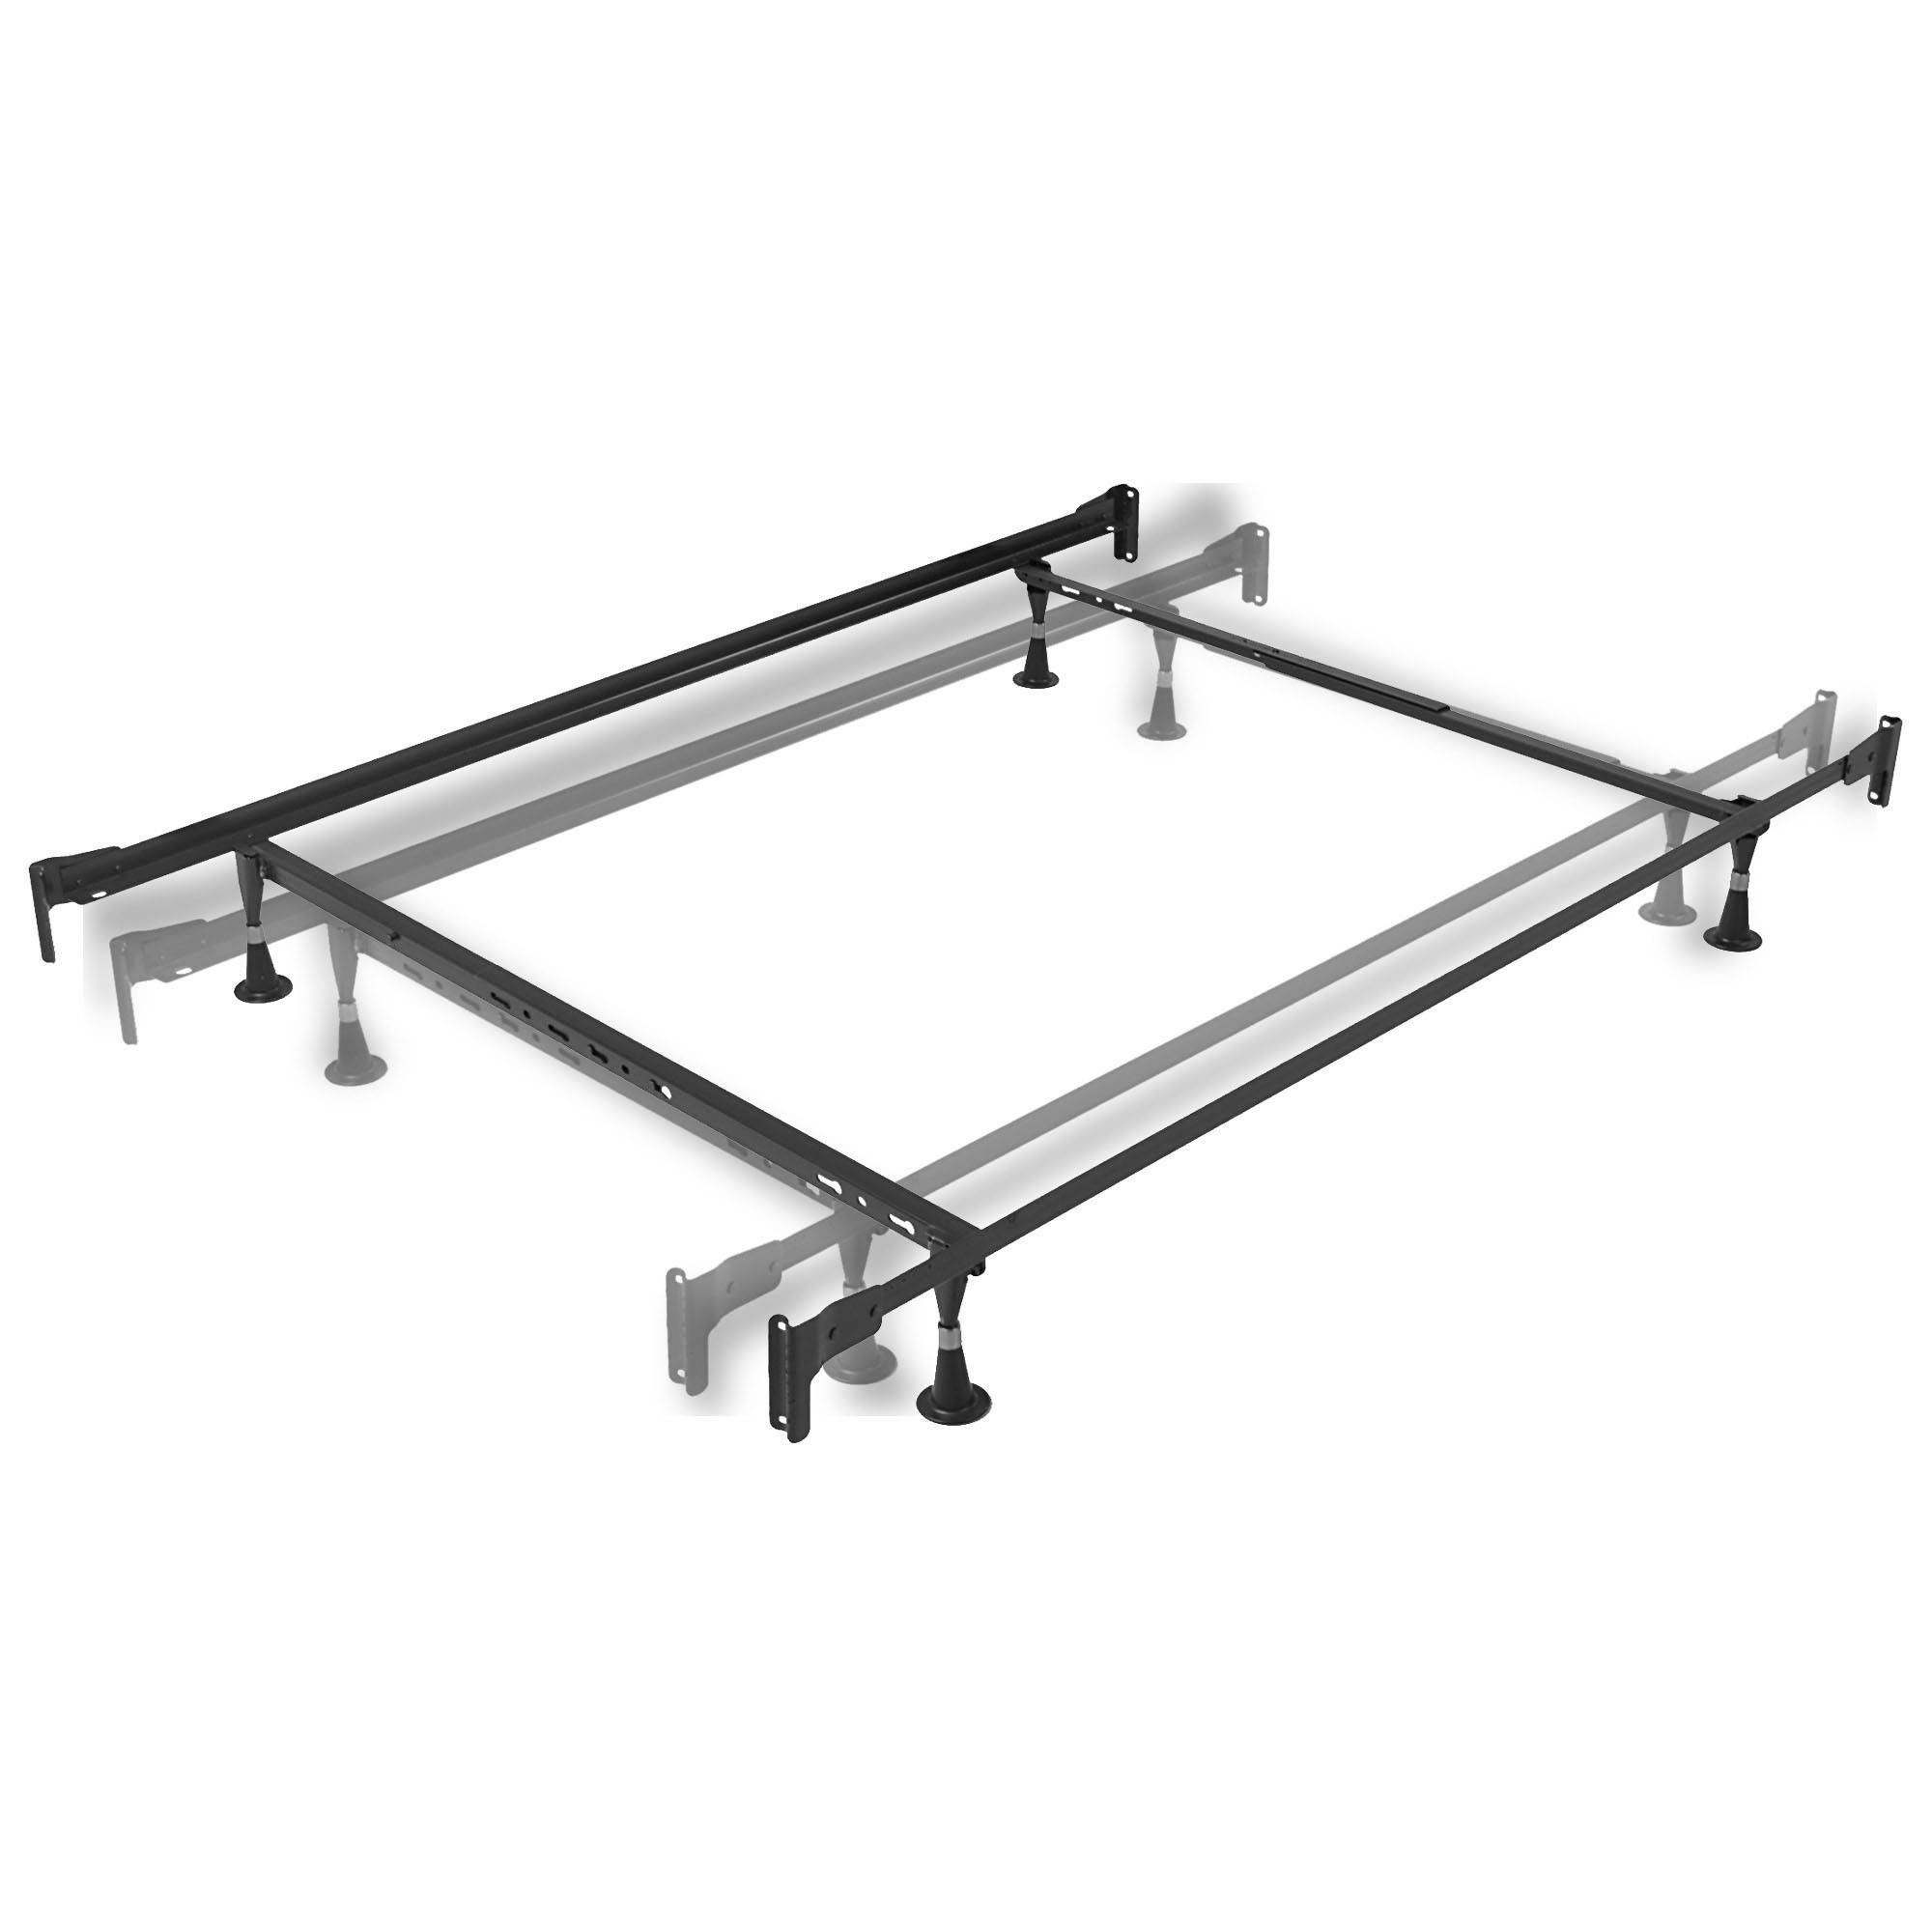 adjustable engineered twin product frame leggett frames enlarge platt to lgt full and click bed black